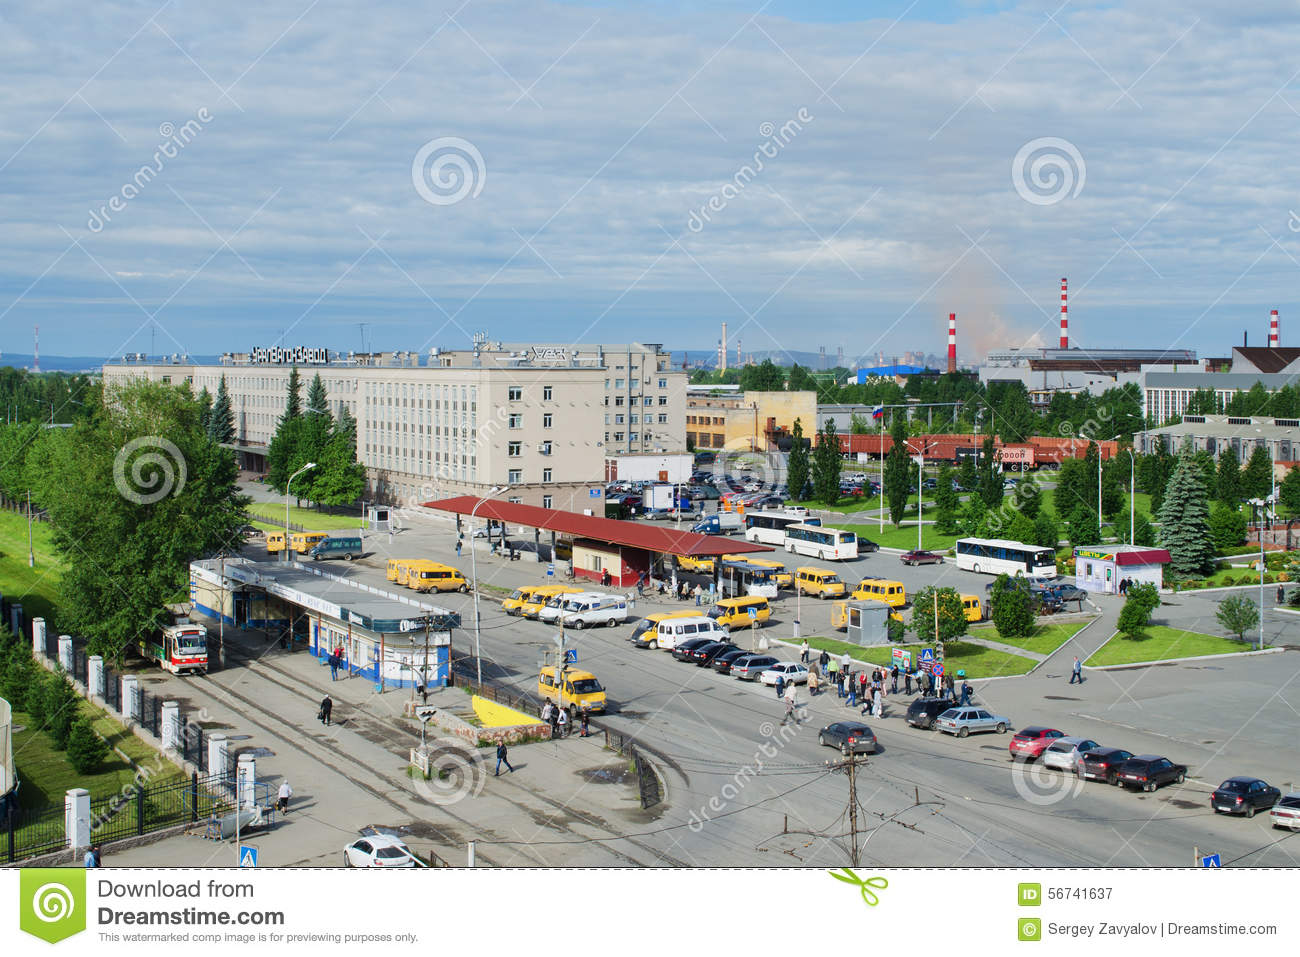 Is it worth from Nizhny Tagil to move to Rostov-on-Don 100